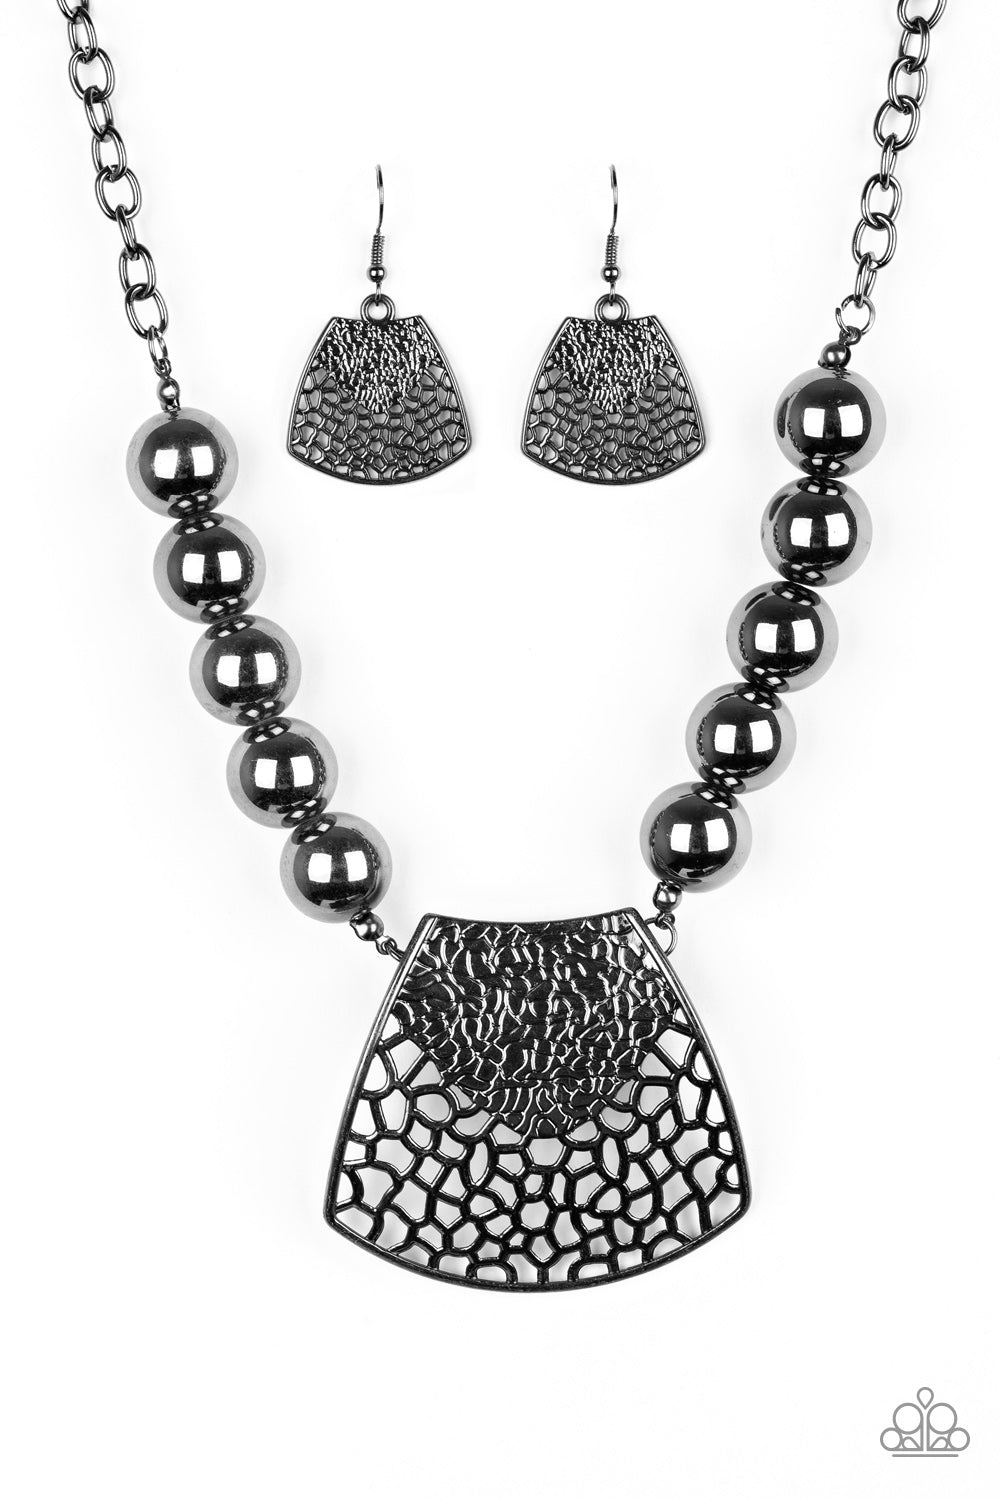 Paparazzi Accessories - Large and In Charge - Black Necklace Set - JMJ Jewelry Collection